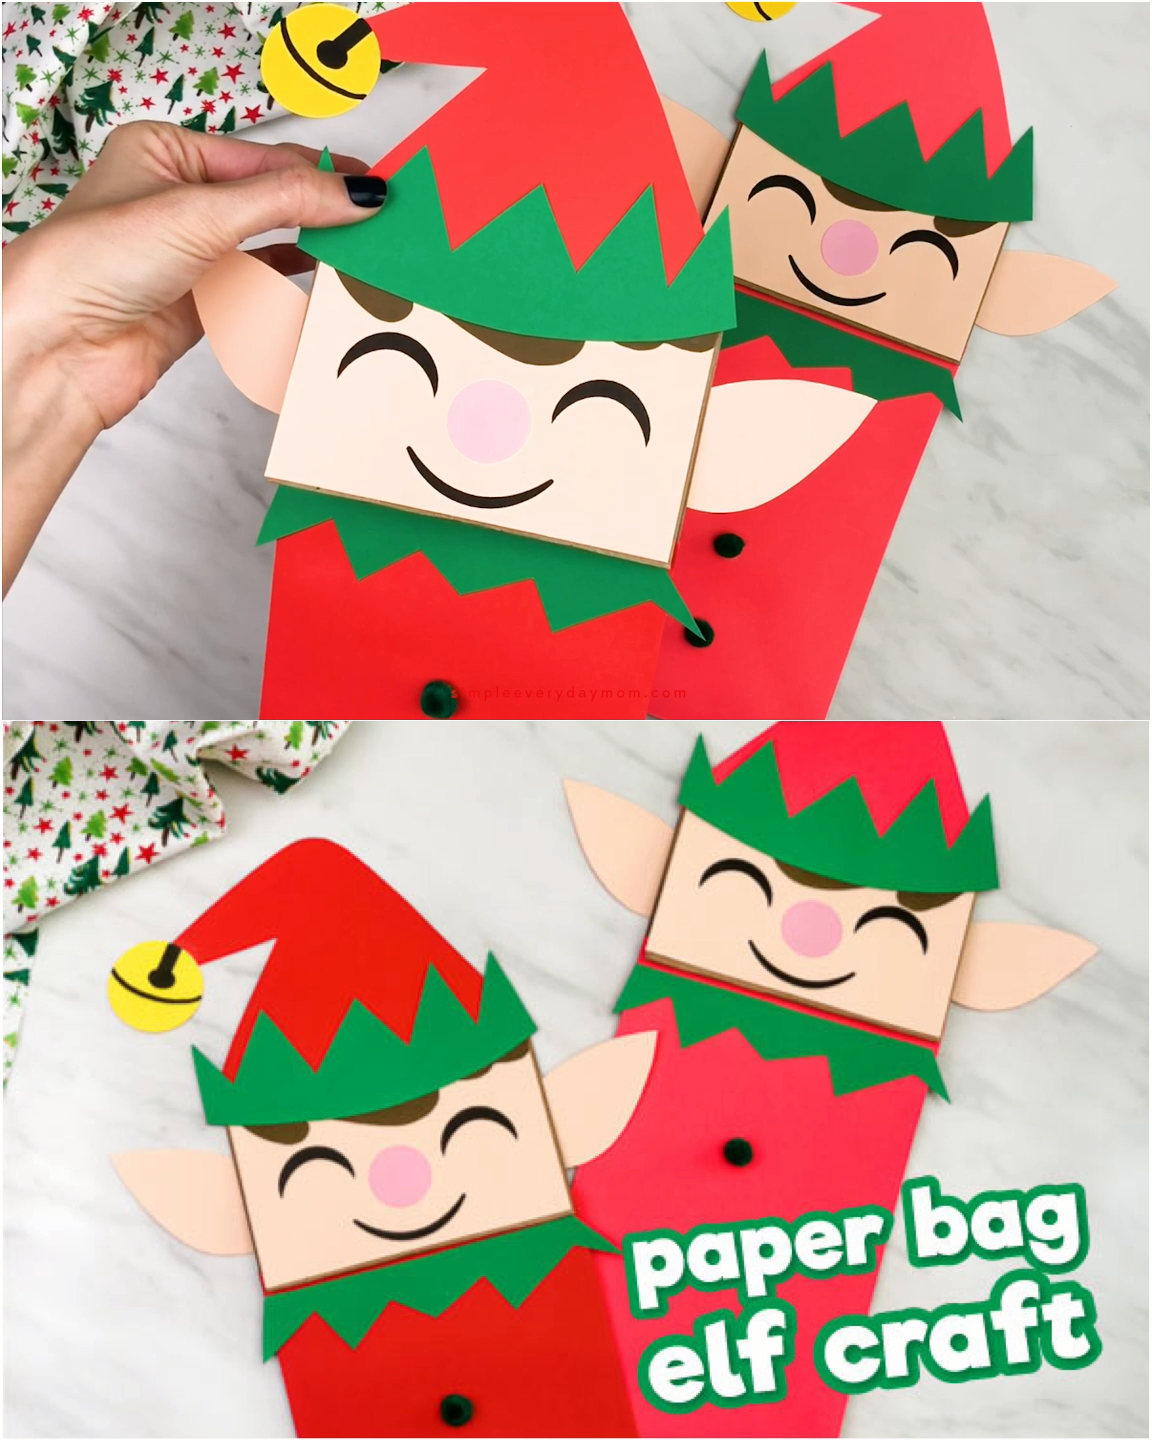 Make this cute and easy paper bag elf puppet this Christmas season! It's a fun Xmas craft that comes with a free printable template so it's easy to recreate at home, in the classroom, daycare or library!  #simpleeverydaymom #paperbagcrafts #elfcrafts #christmascrafts #xmascrafts #kidscrafts #daycarecrafts #librarycrafts #classroom